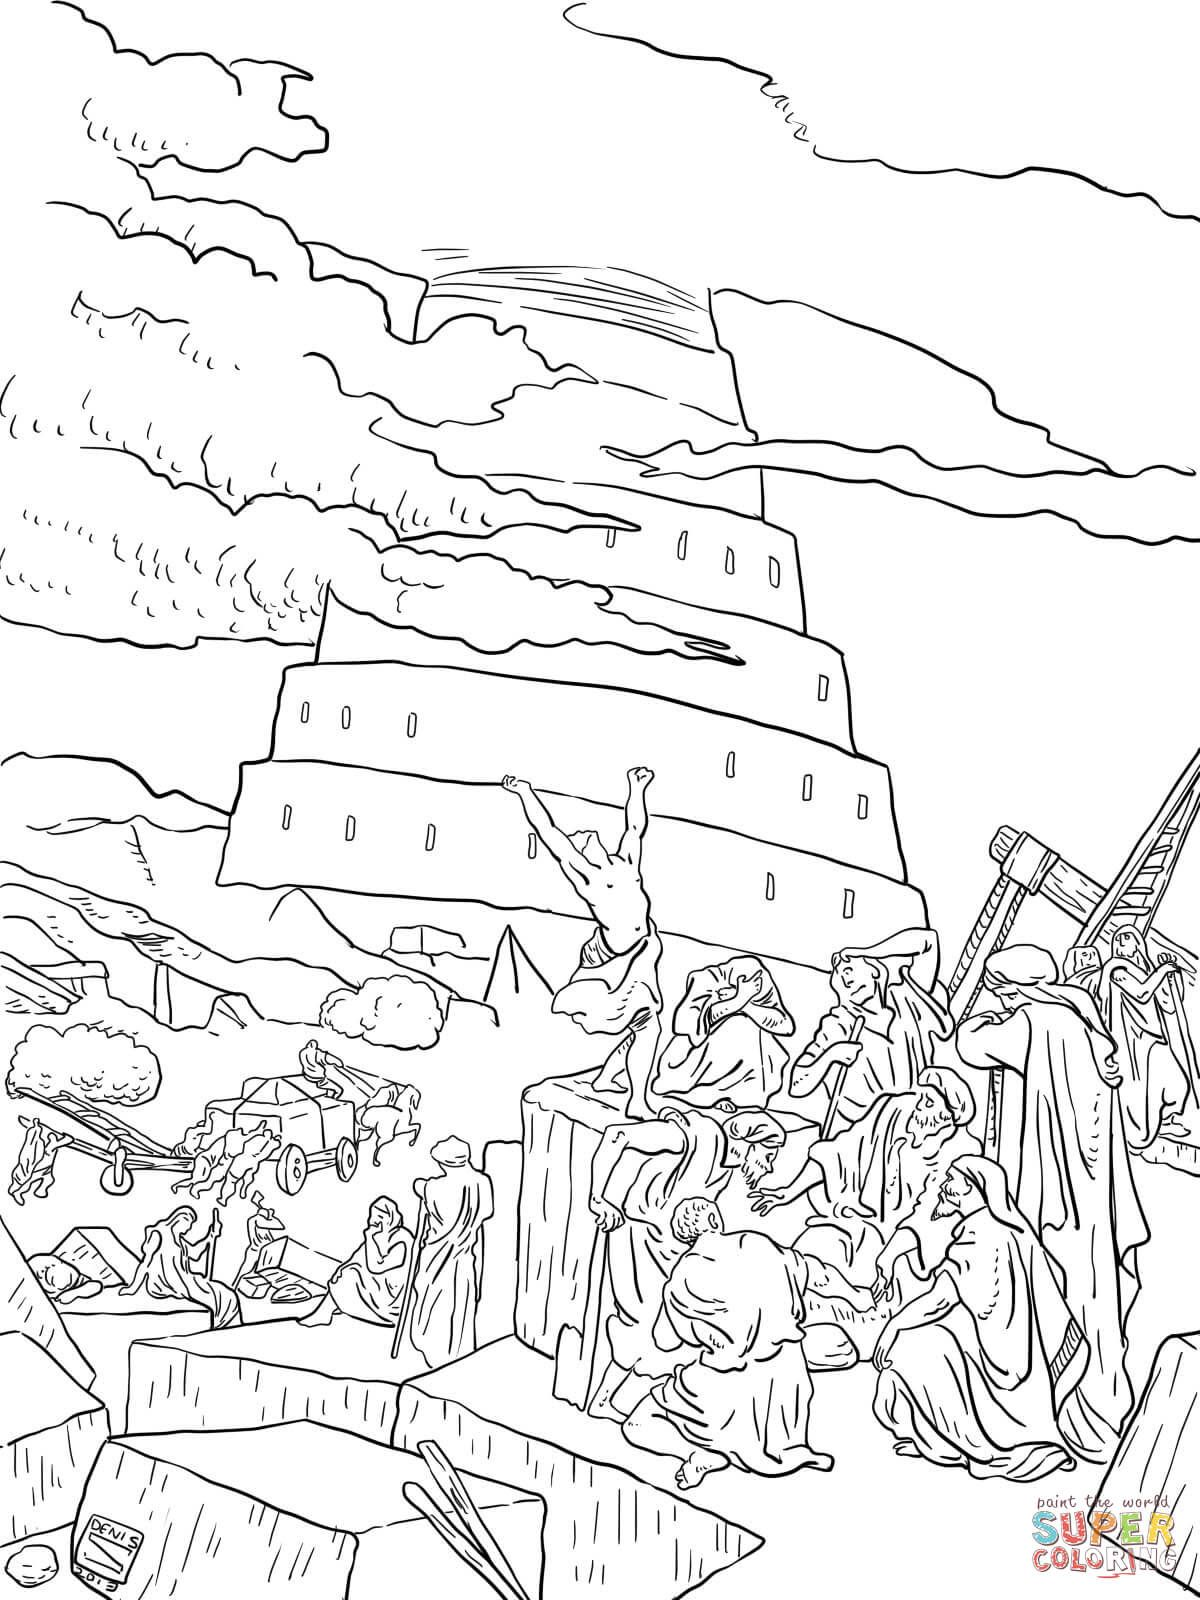 Download Or Print This Amazing Coloring Page Tower Of Babel And